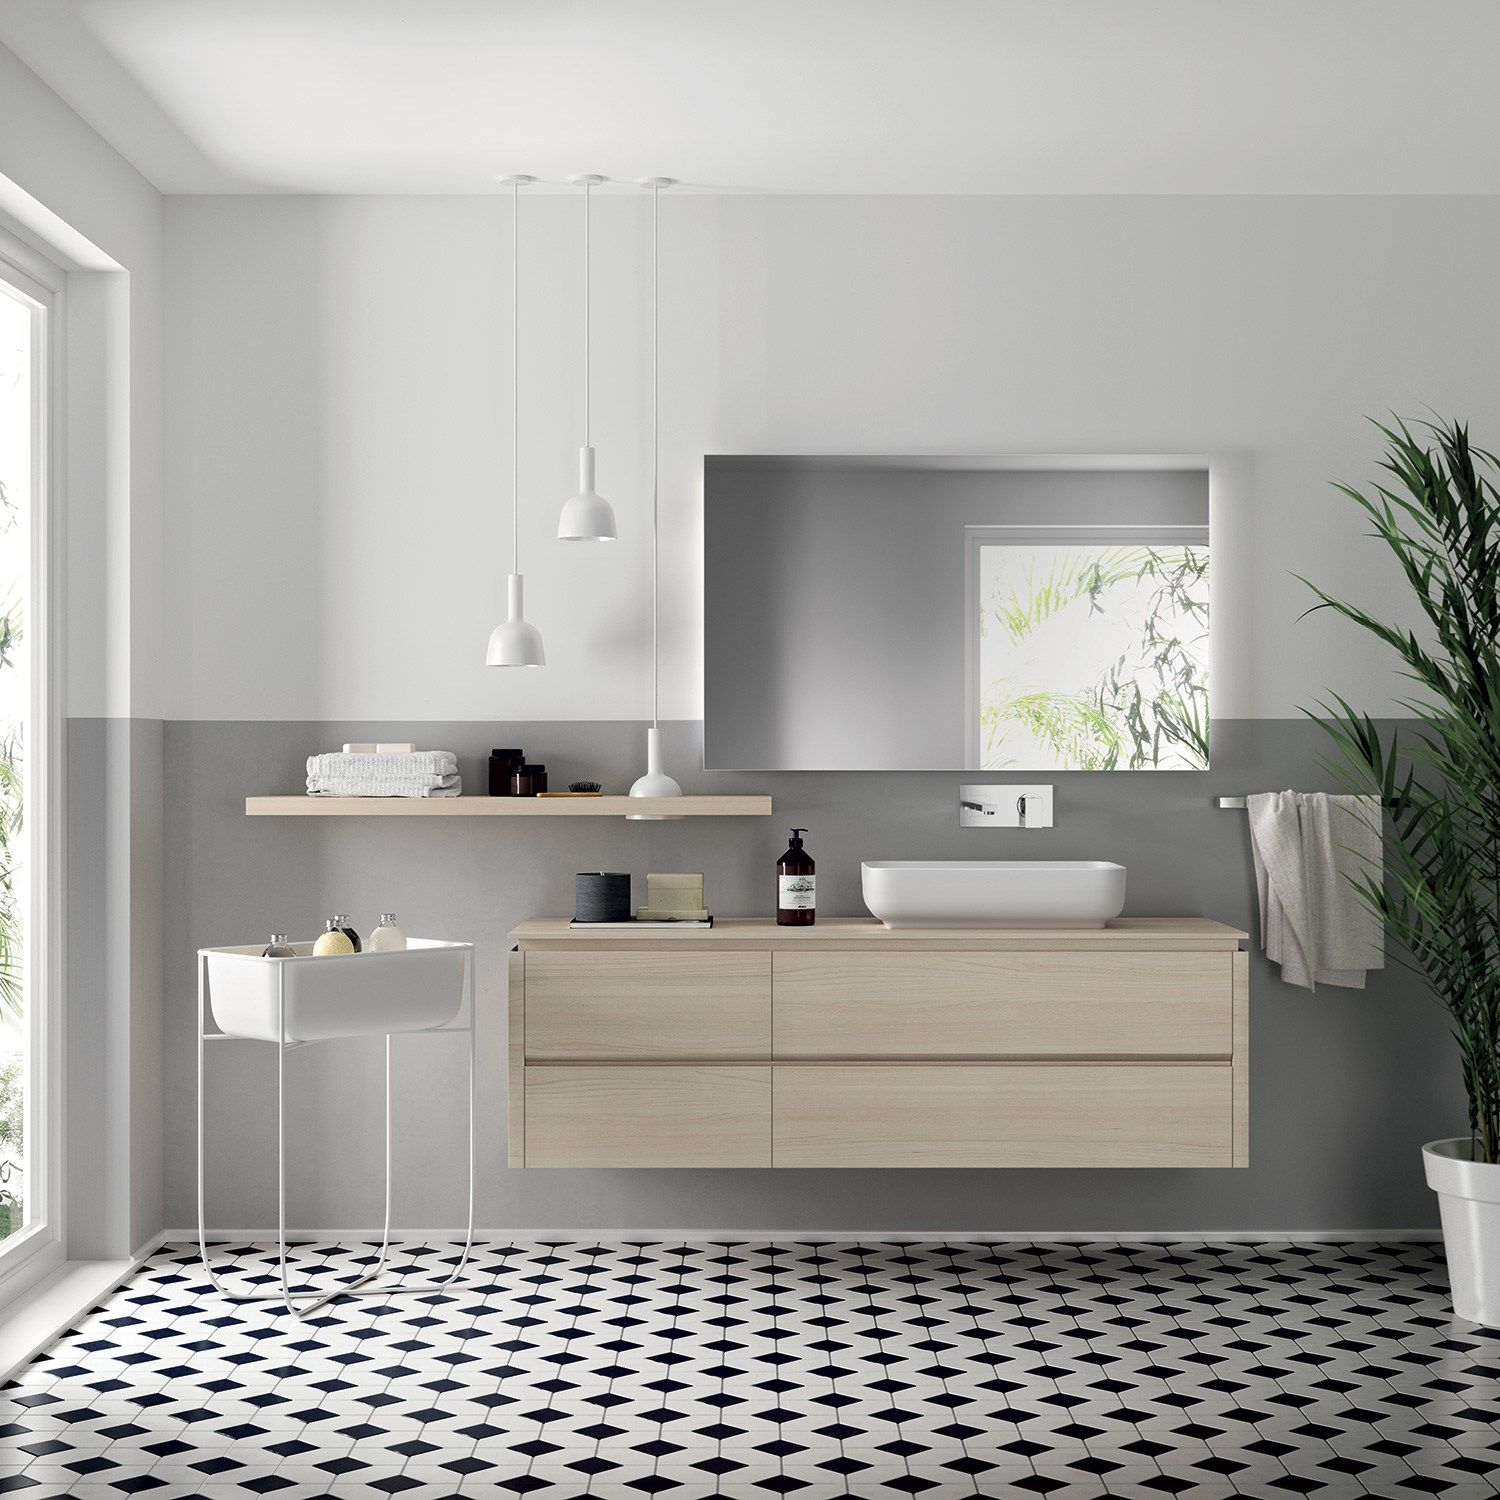 bathroom furniture set ki by scavolini bathrooms design nendo - Bathroom Design Houston